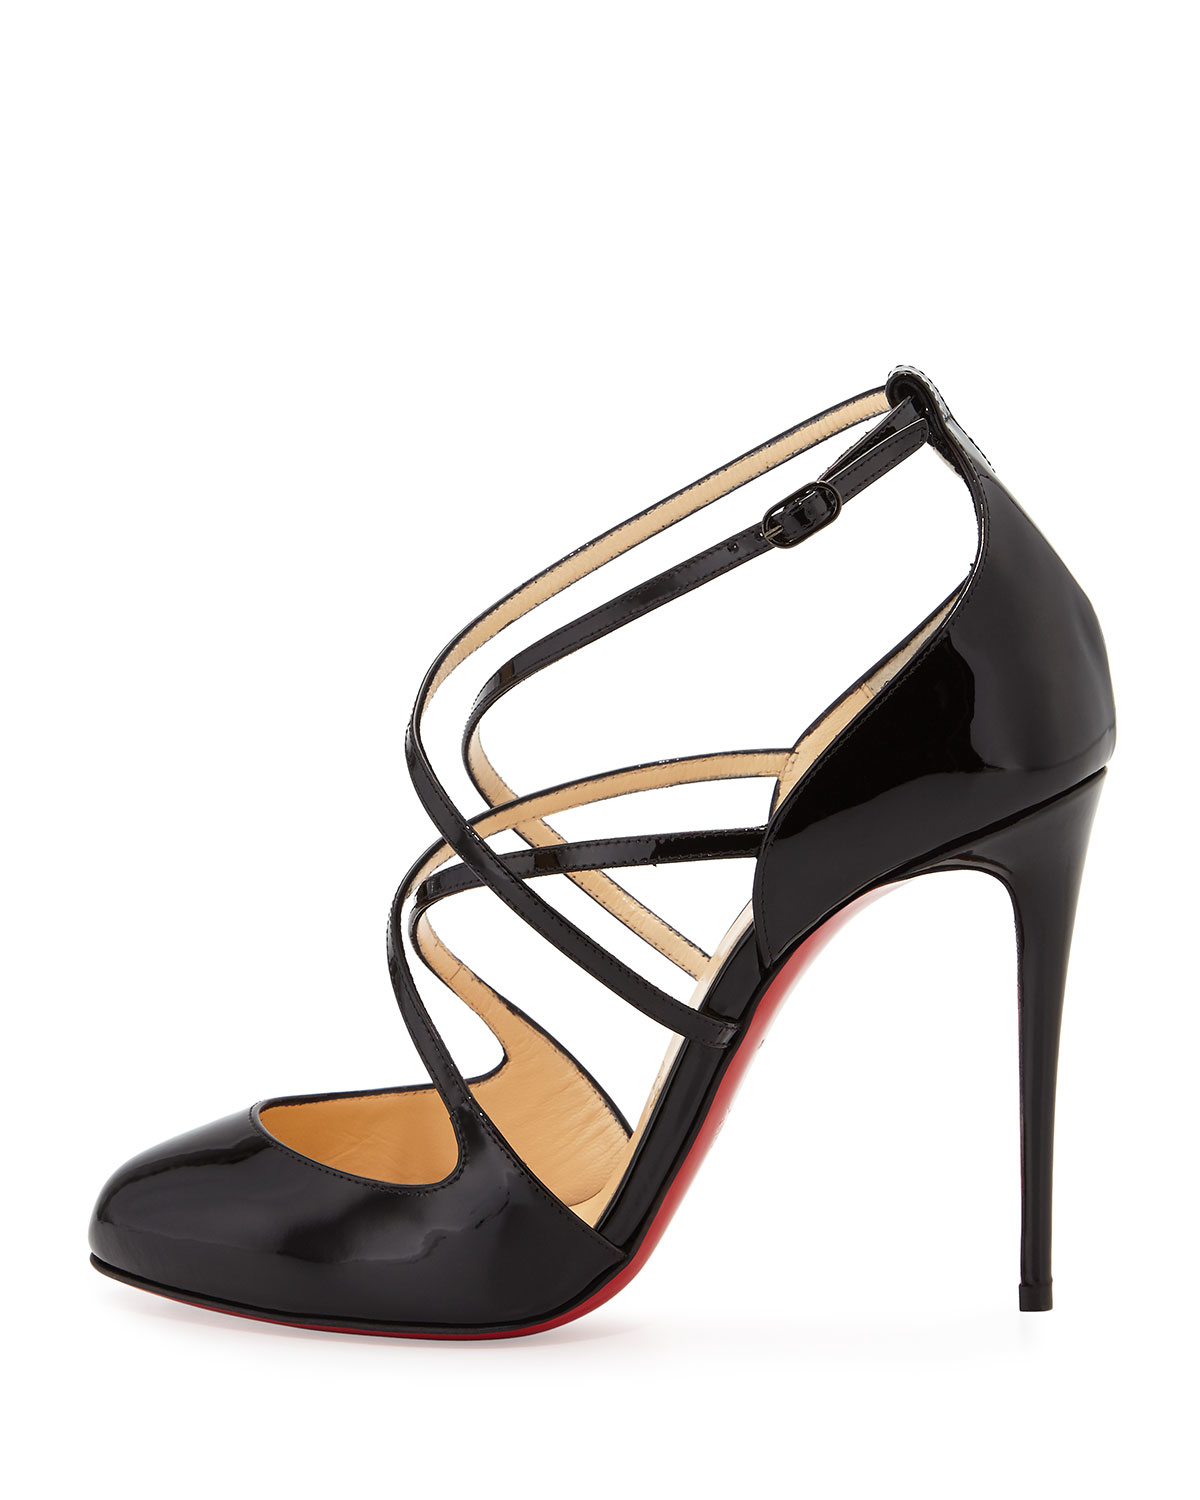 12ad9ed5cb5 Lyst - Christian Louboutin Soustelissimo Strappy Red Sole Pump in Black